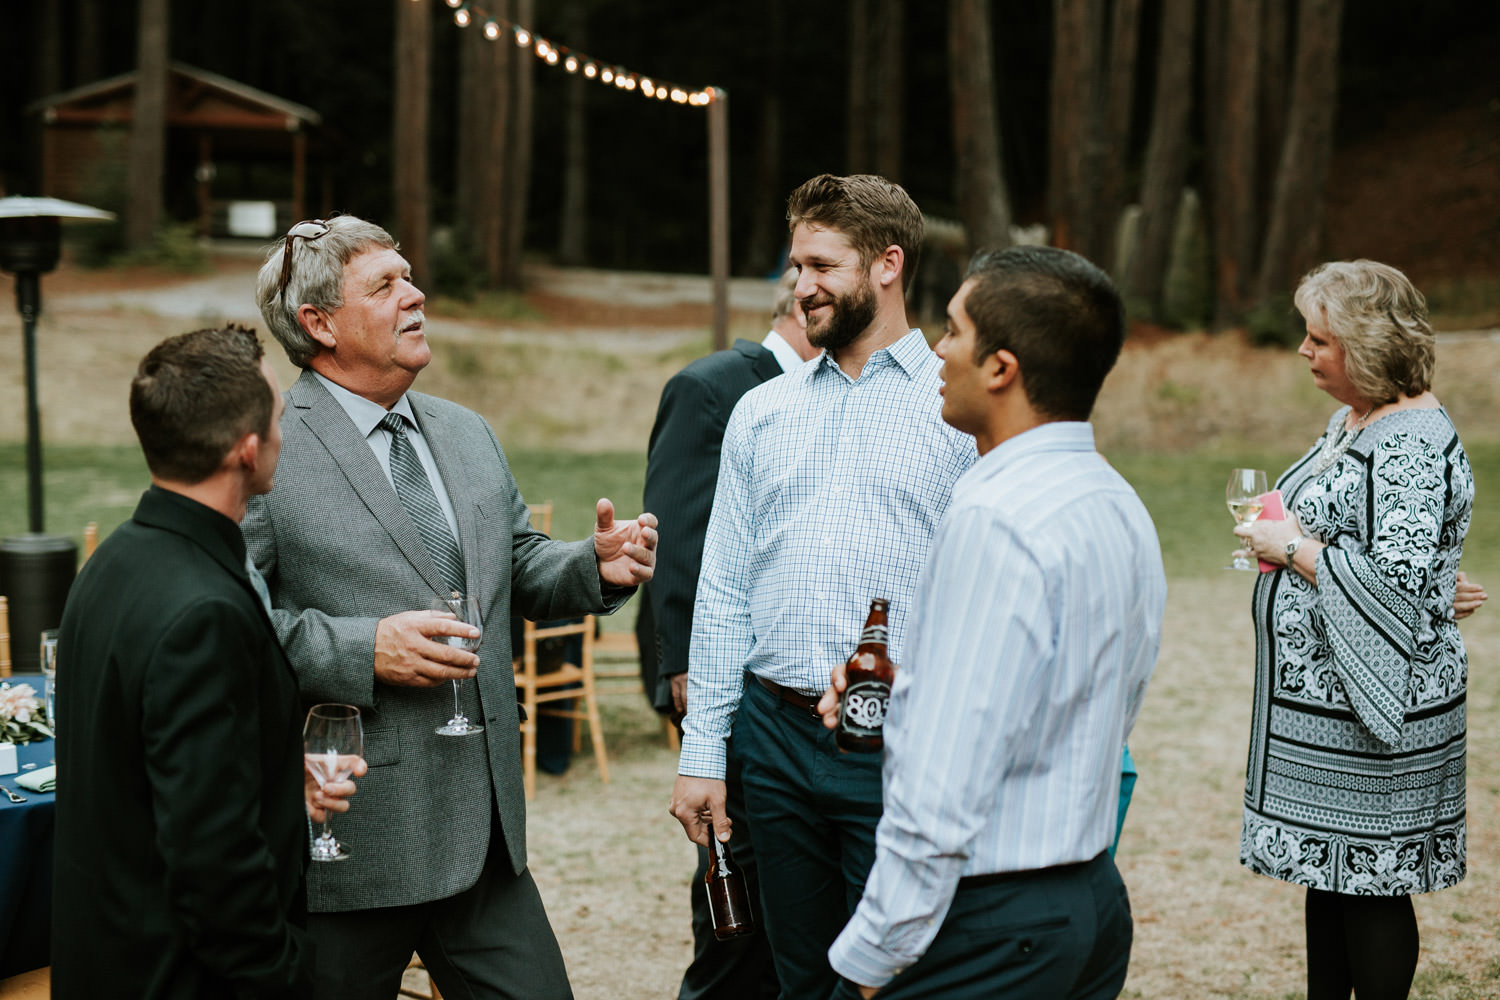 Wedding guest socialize during the wedding's cocktail hour at Camp Campbell in California